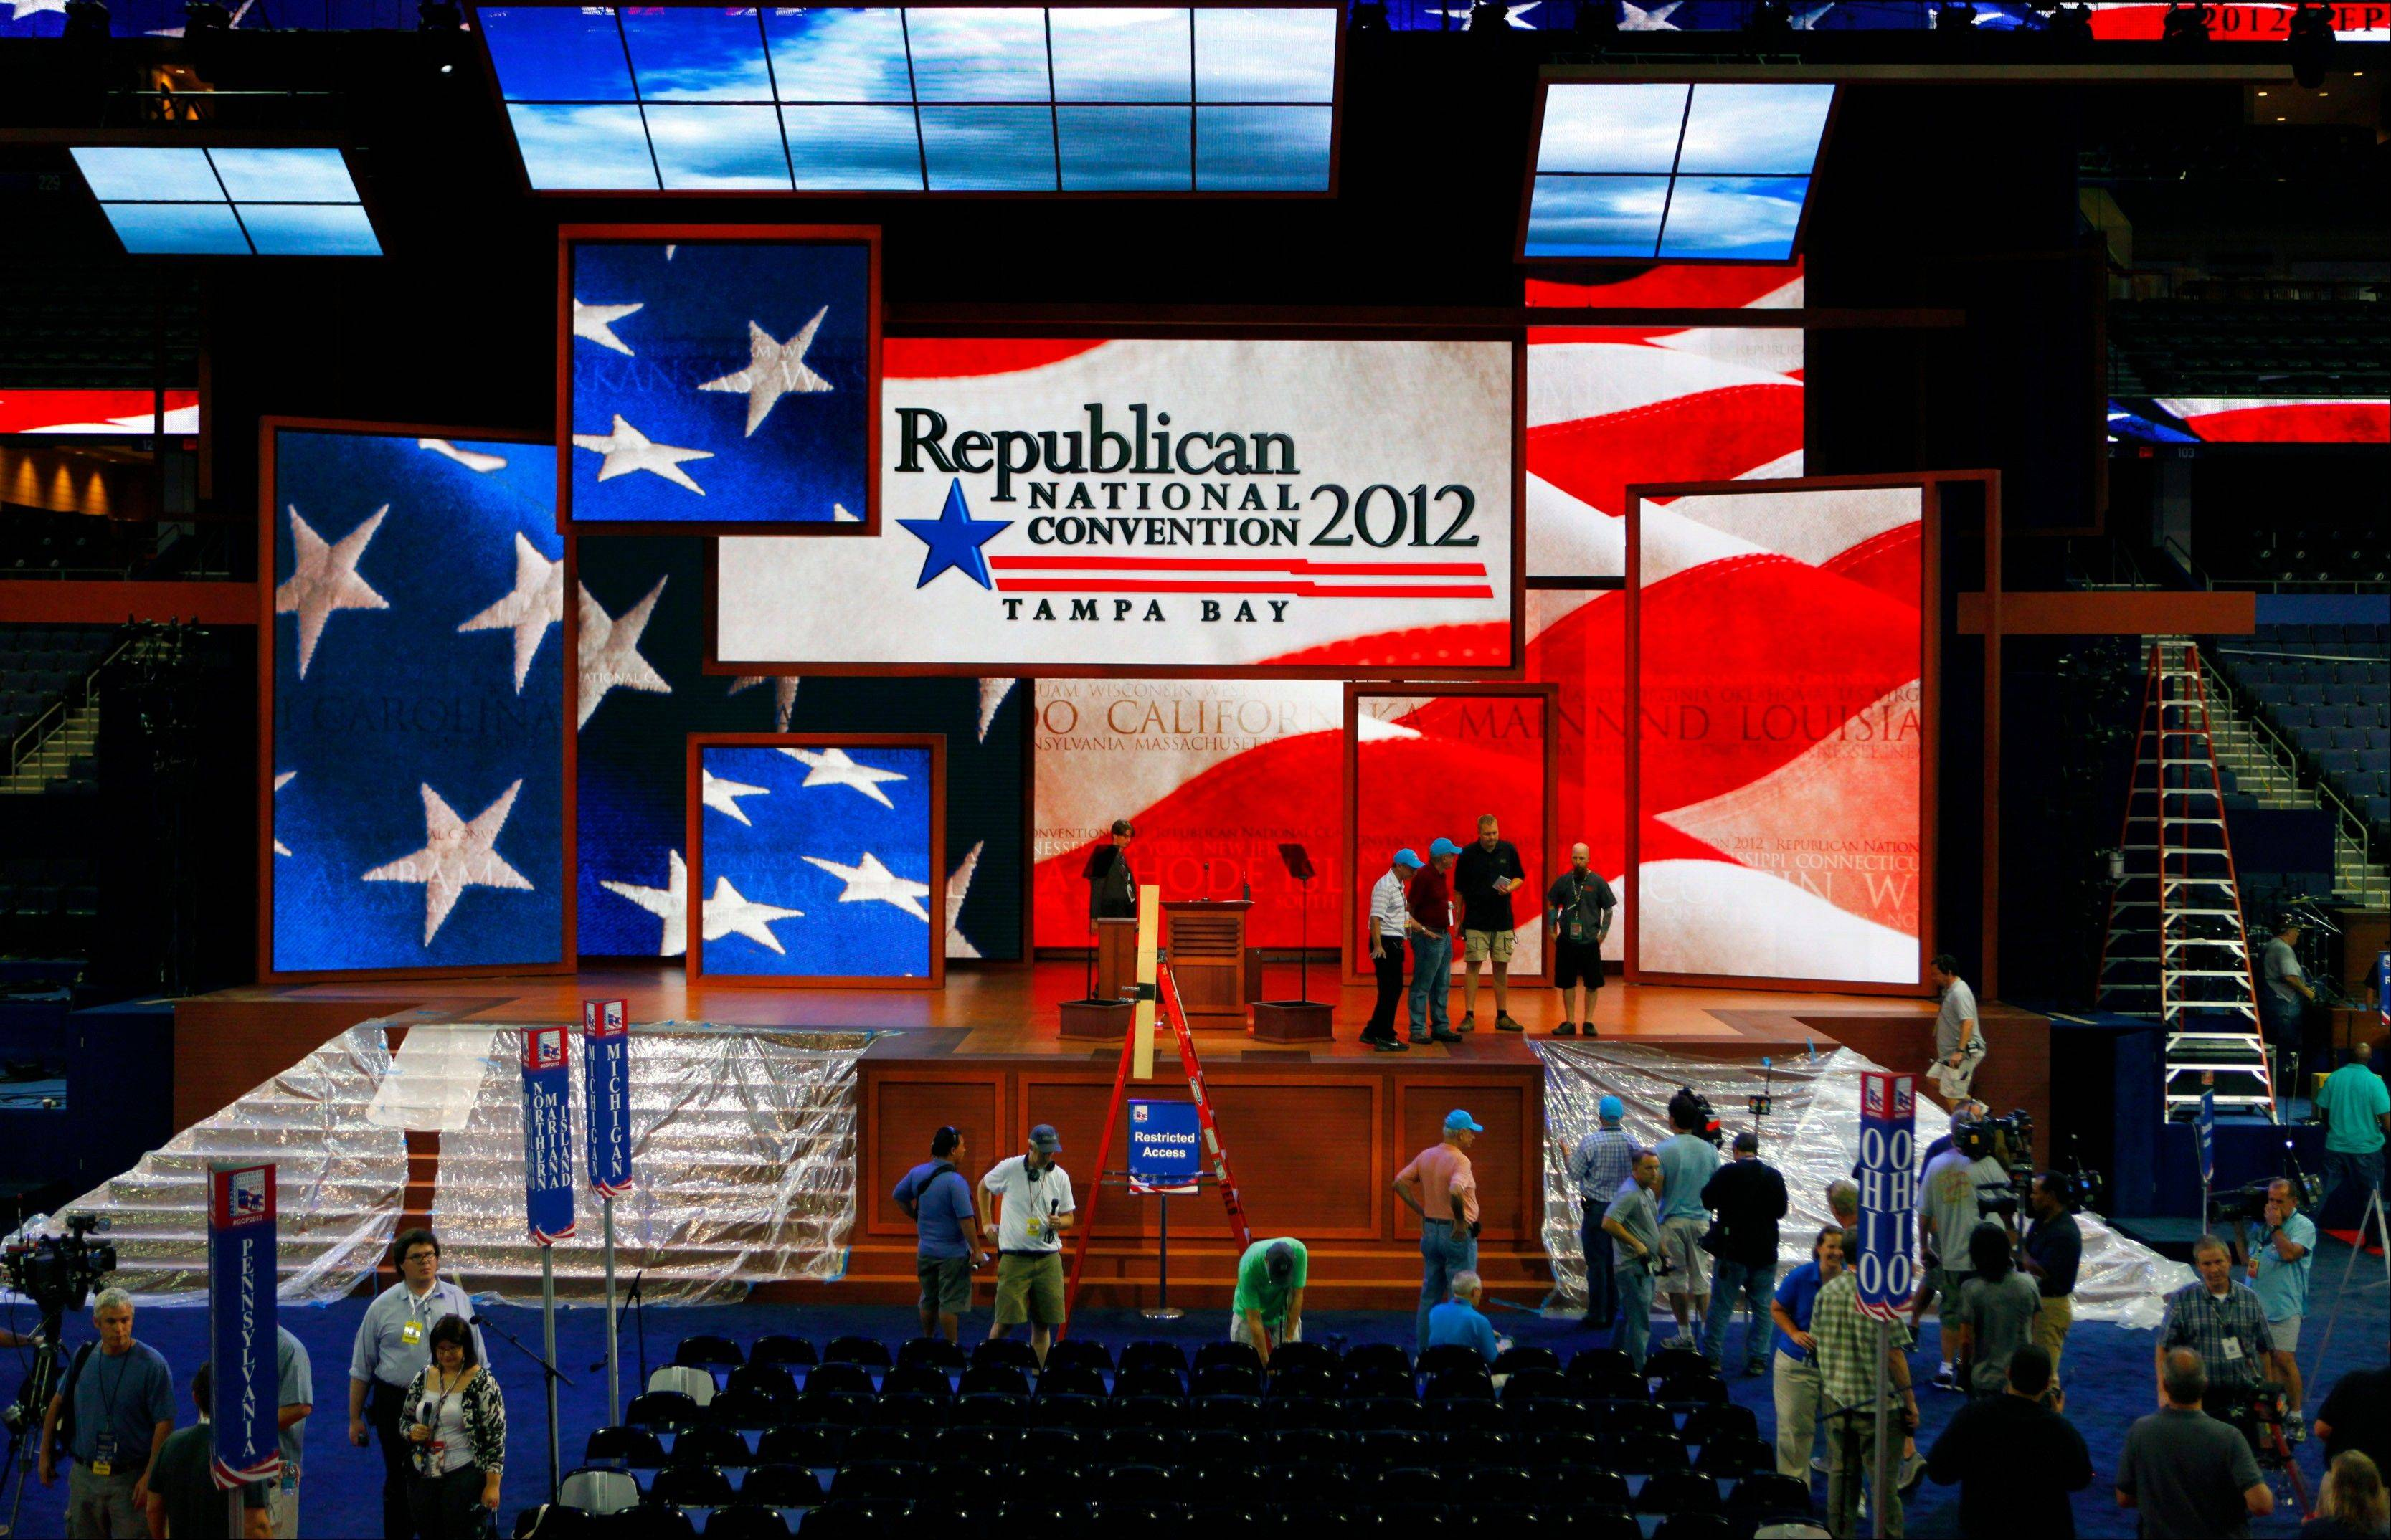 Workers prepare the stage for the Republican National Convention inside the Tampa Bay Times Forum, Saturday in Tampa, Fla. Officials from the Republican Party announced Saturday that the first day of the convention would be scrapped due to the weather.